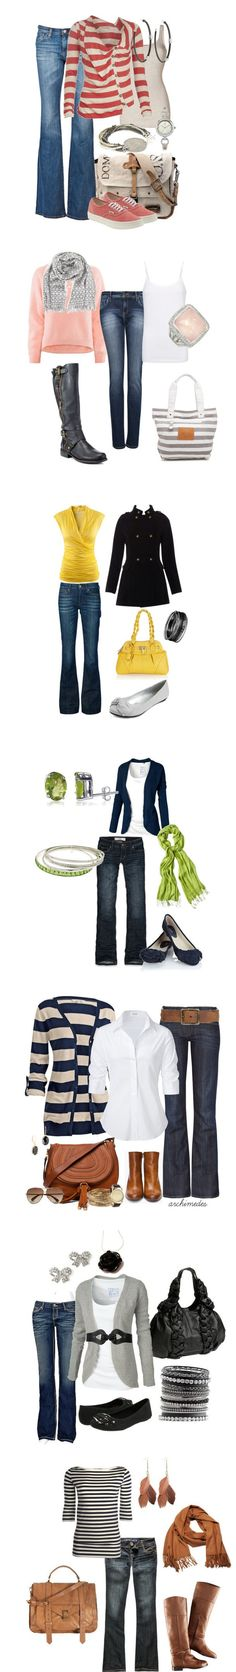 20 October Fashion Picks - - A few of my October Fashion Picks, these outfits are bright, colorful, and dressed to kill. Mode Outfits, Fashion Outfits, Womens Fashion, Fashion Trends, Fashion 2017, Fashion Inspiration, Jeans Casual, Casual Outfits, Office Outfits